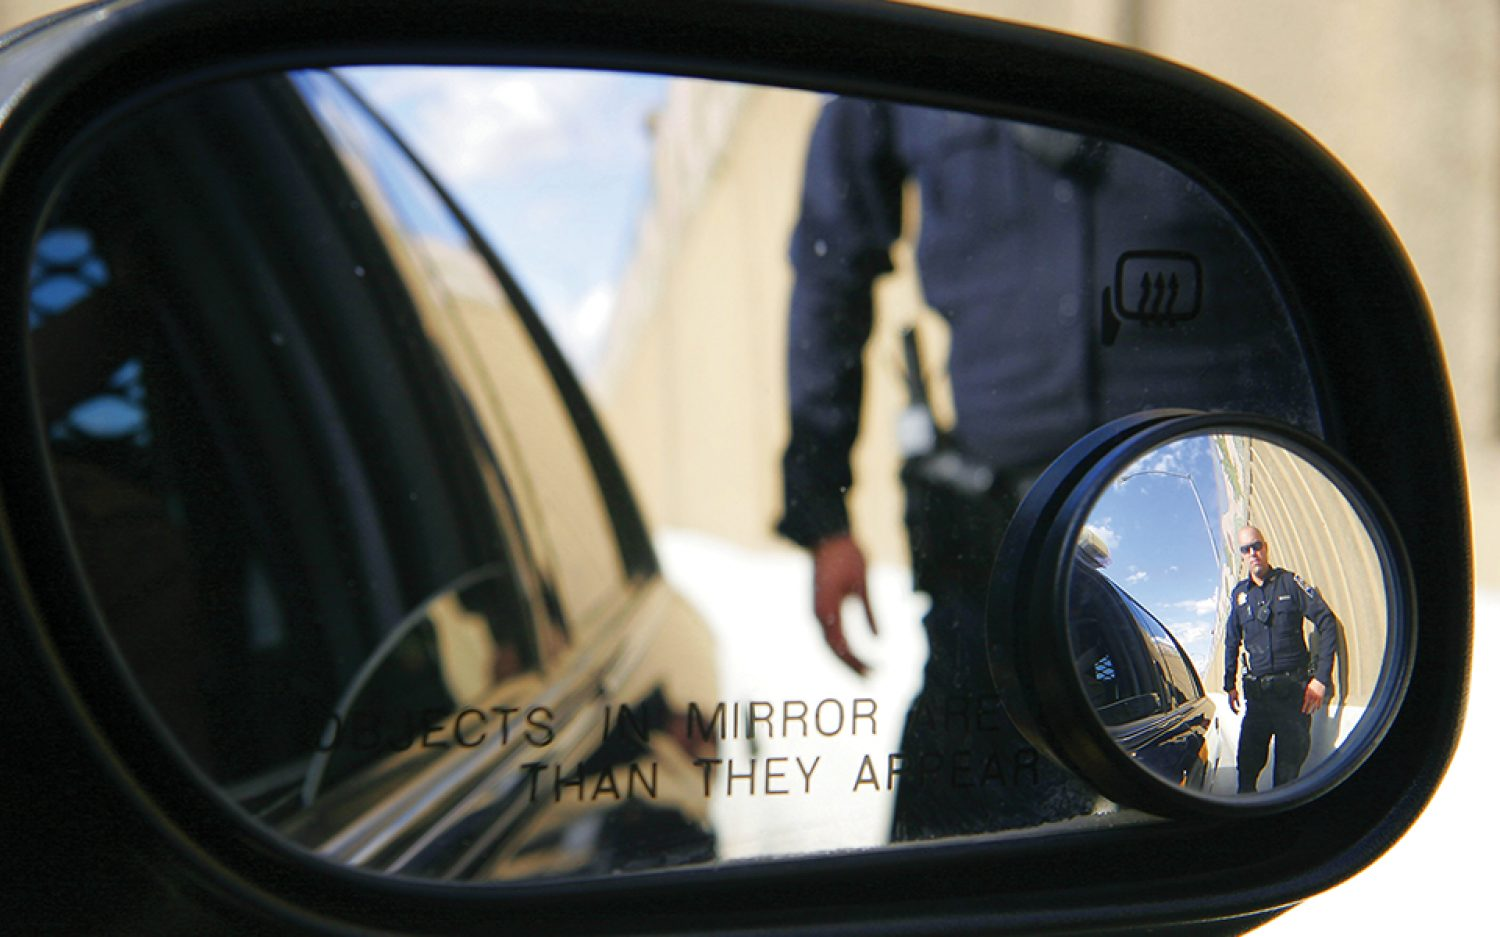 The trouble with traffic stops